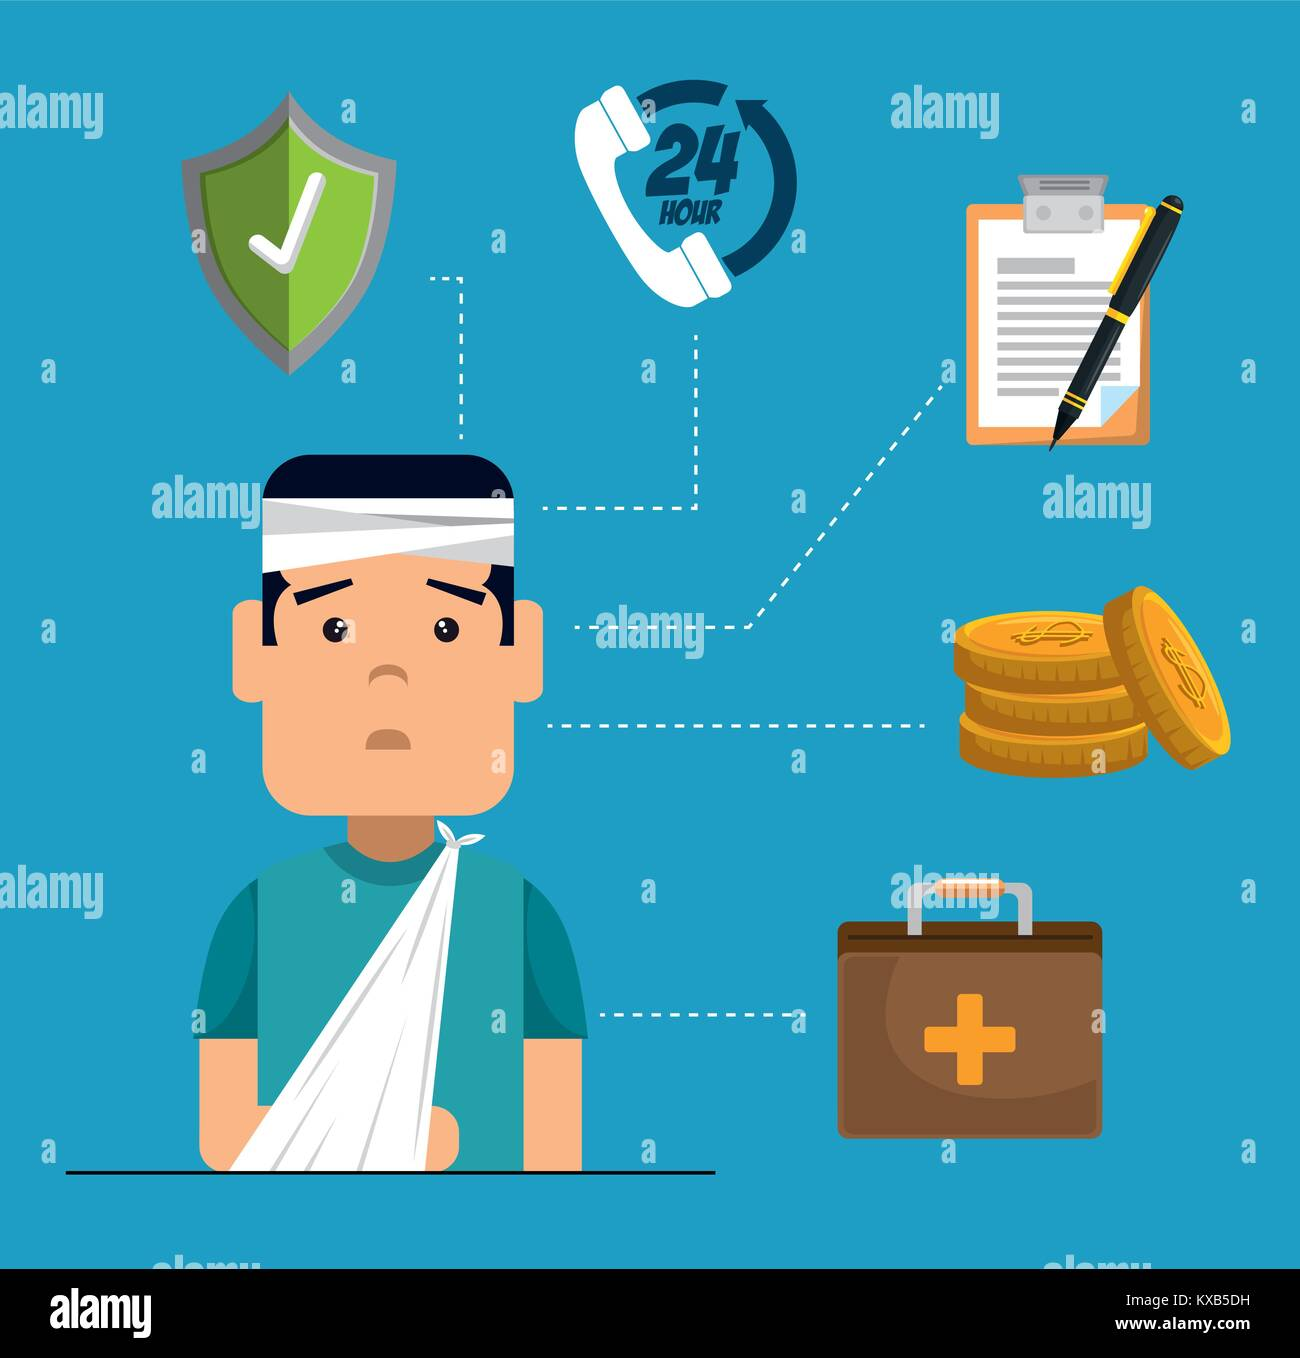 health insurance service concept - Stock Image